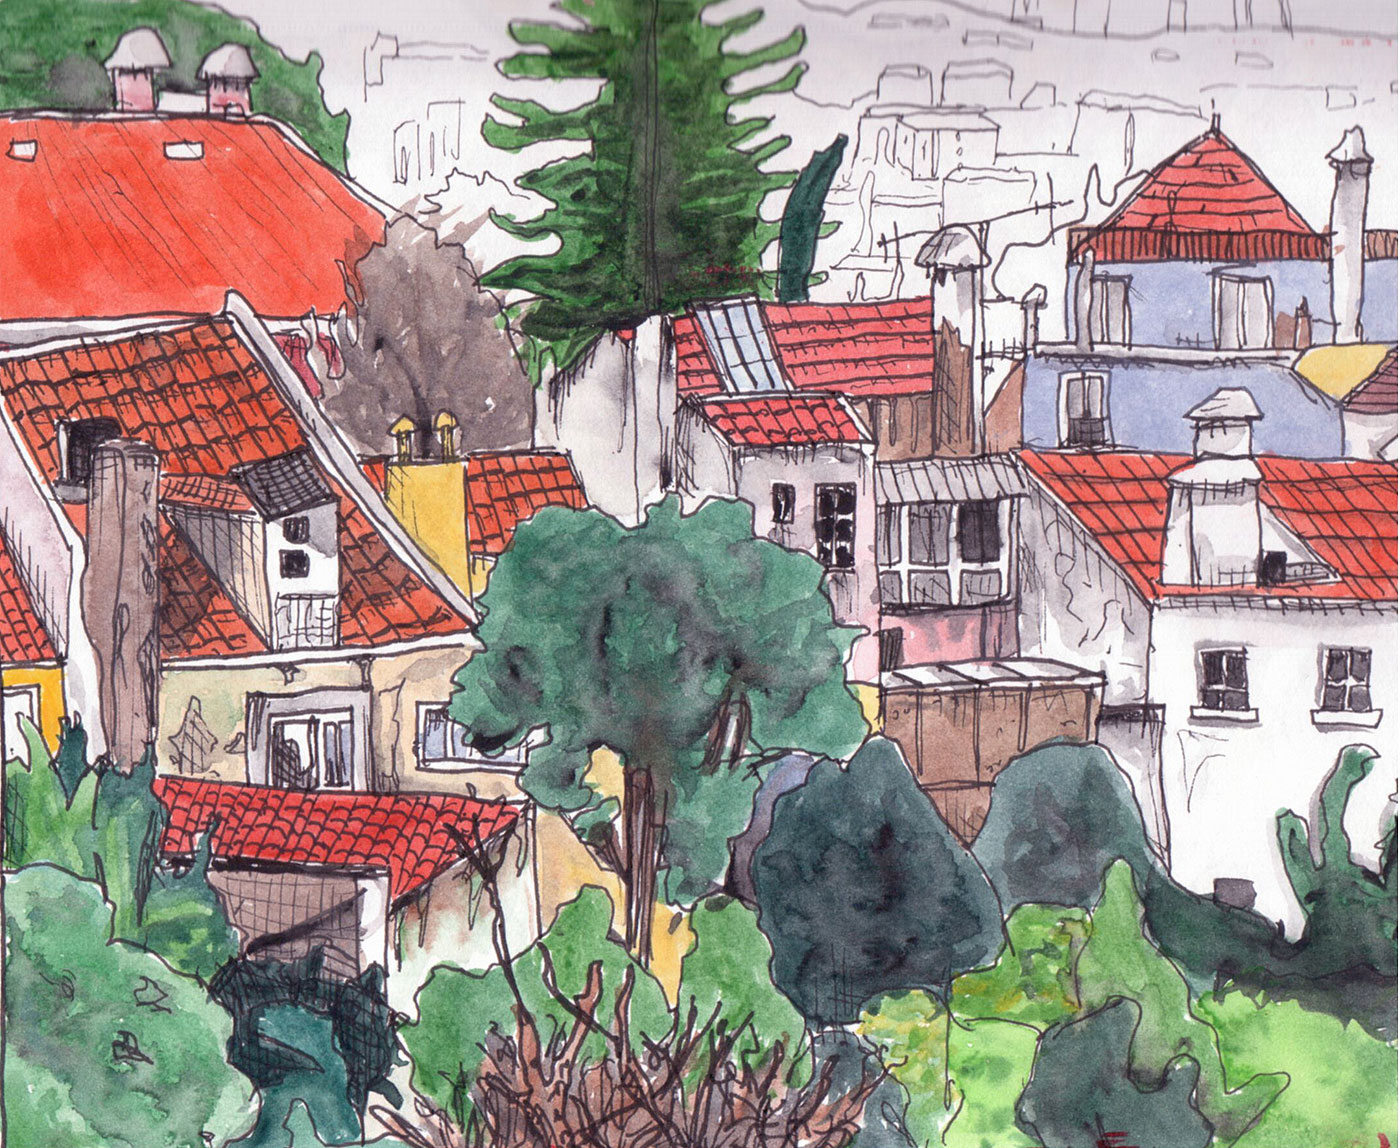 """05. View from my aunt's house in Telheiras, Lisbon. Pen & watercolor, 6"""" x 7.4"""", 2011"""